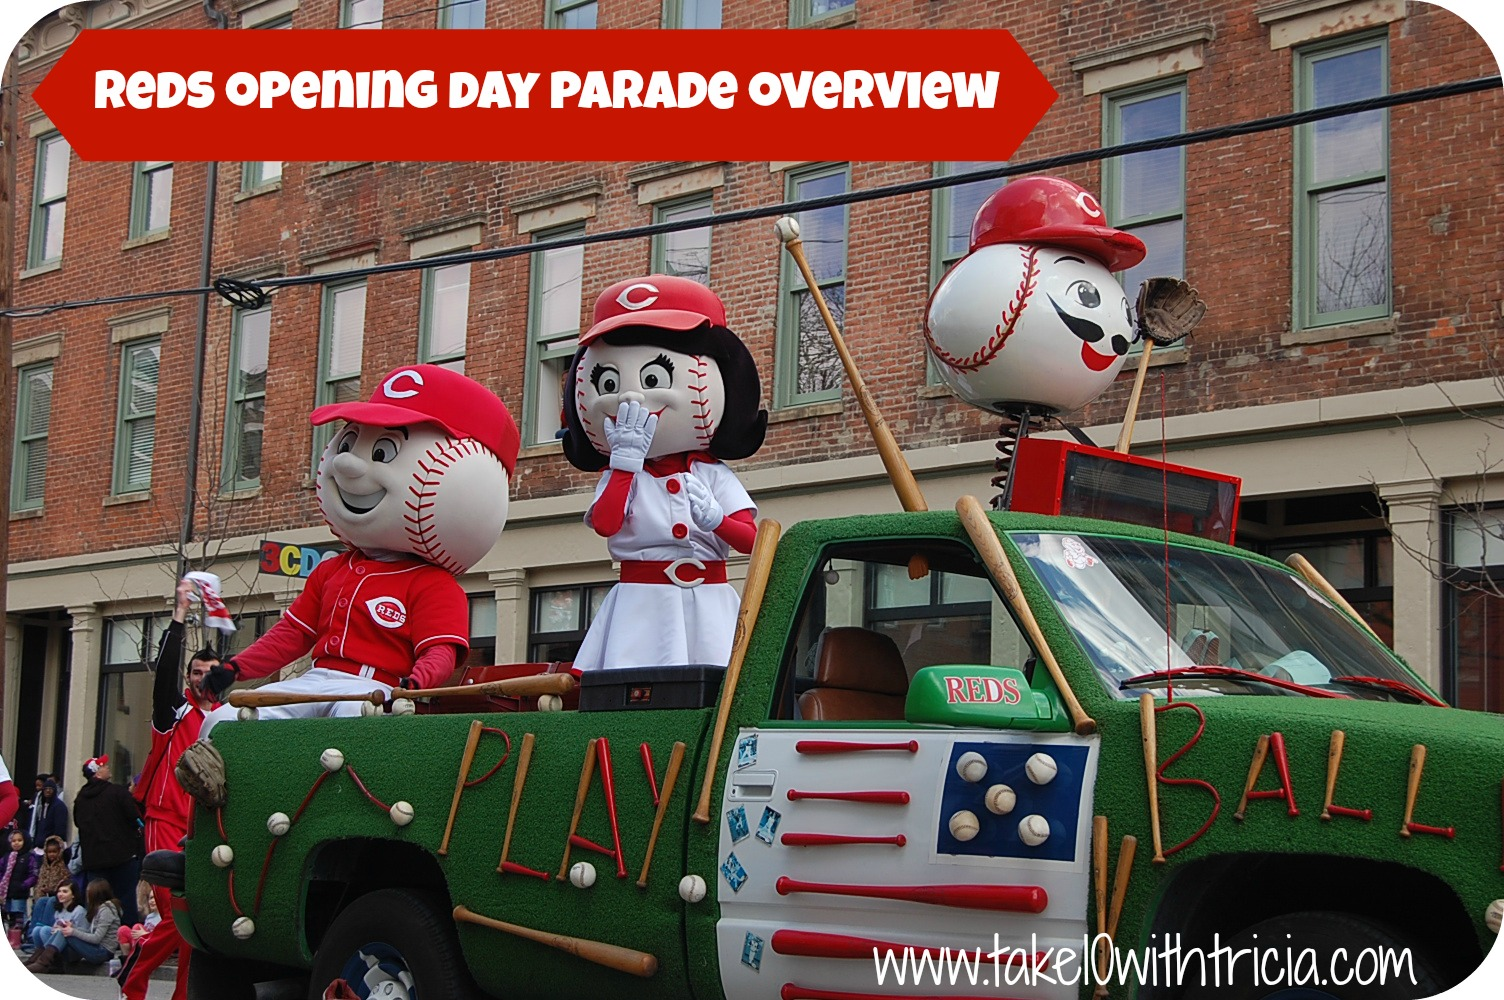 Red Opening Day Parade 2015 The 2015 Reds Opening Day